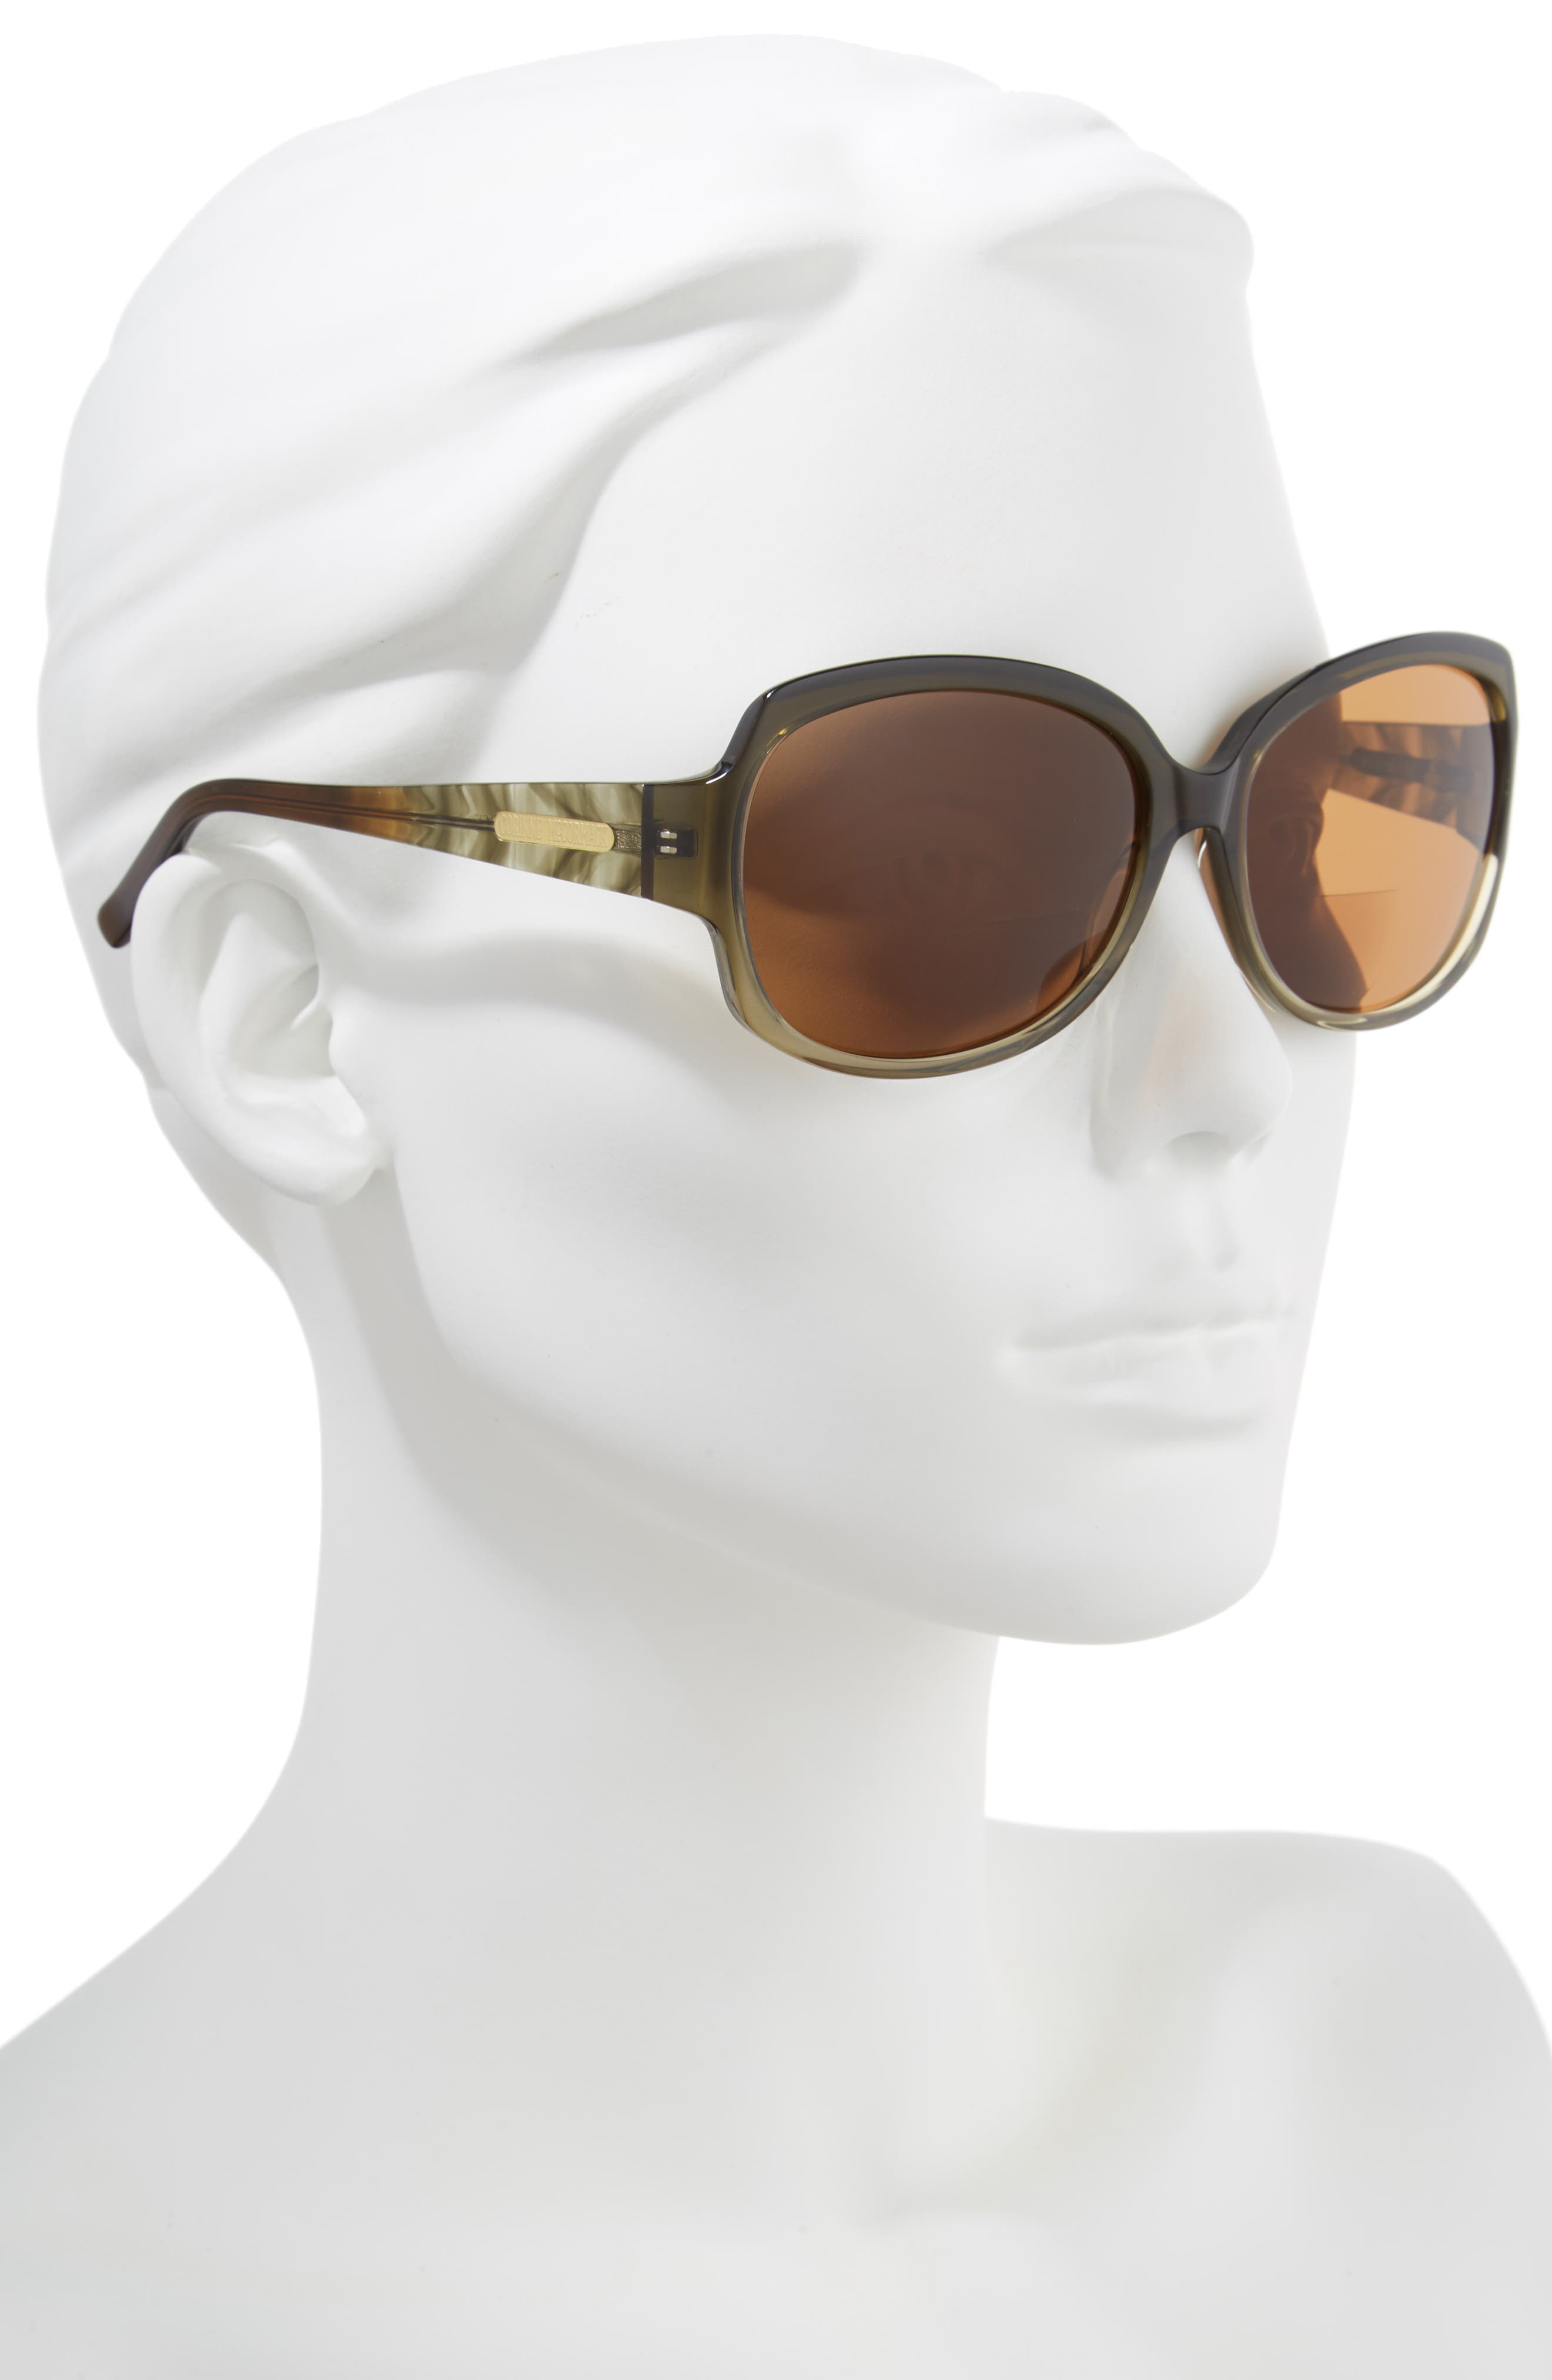 'Elizabeth' 61mm Reading Sunglasses,                             Alternate thumbnail 2, color,                             300